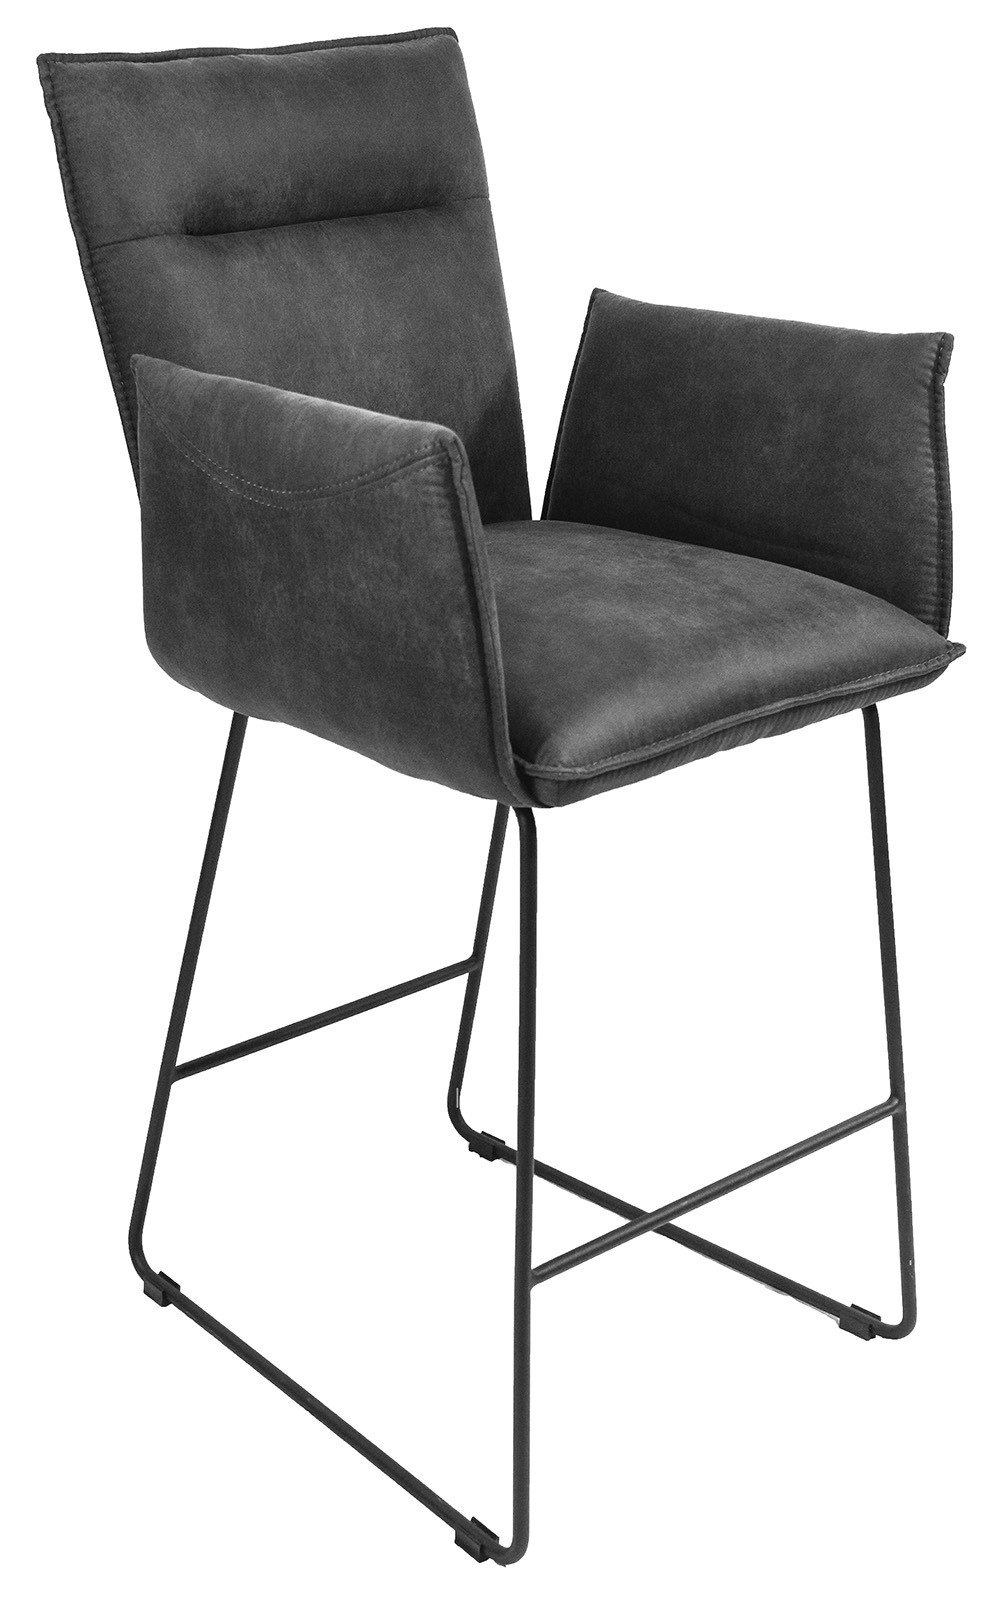 LARSON Bar Stool With Arms - Grey Suede